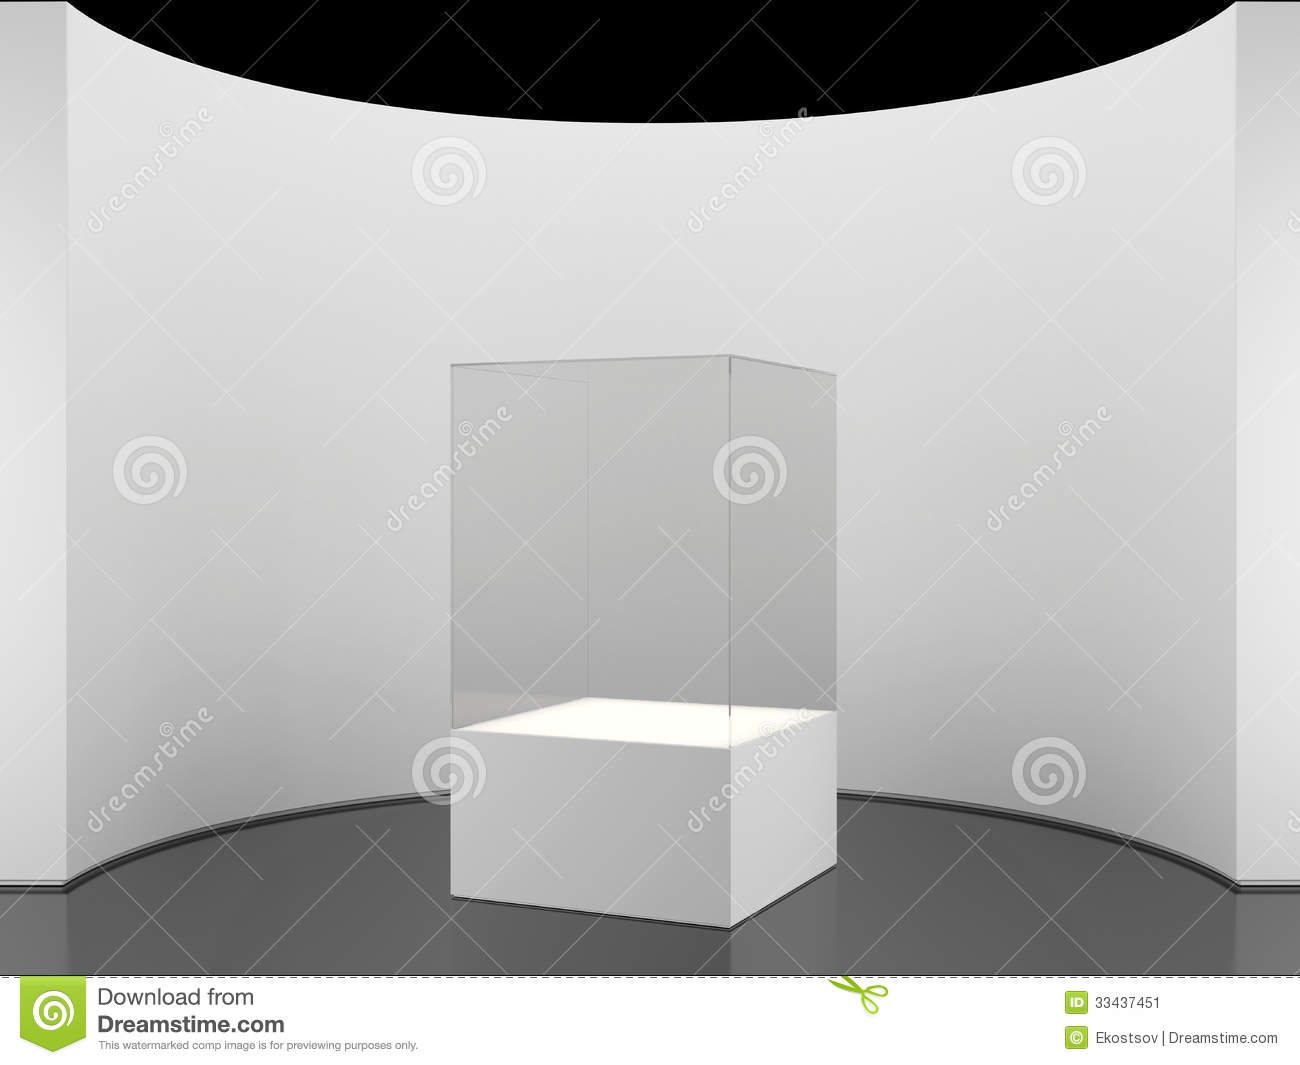 Invitation For Exhibition Stall : Round wall with exhibition stand stock illustration